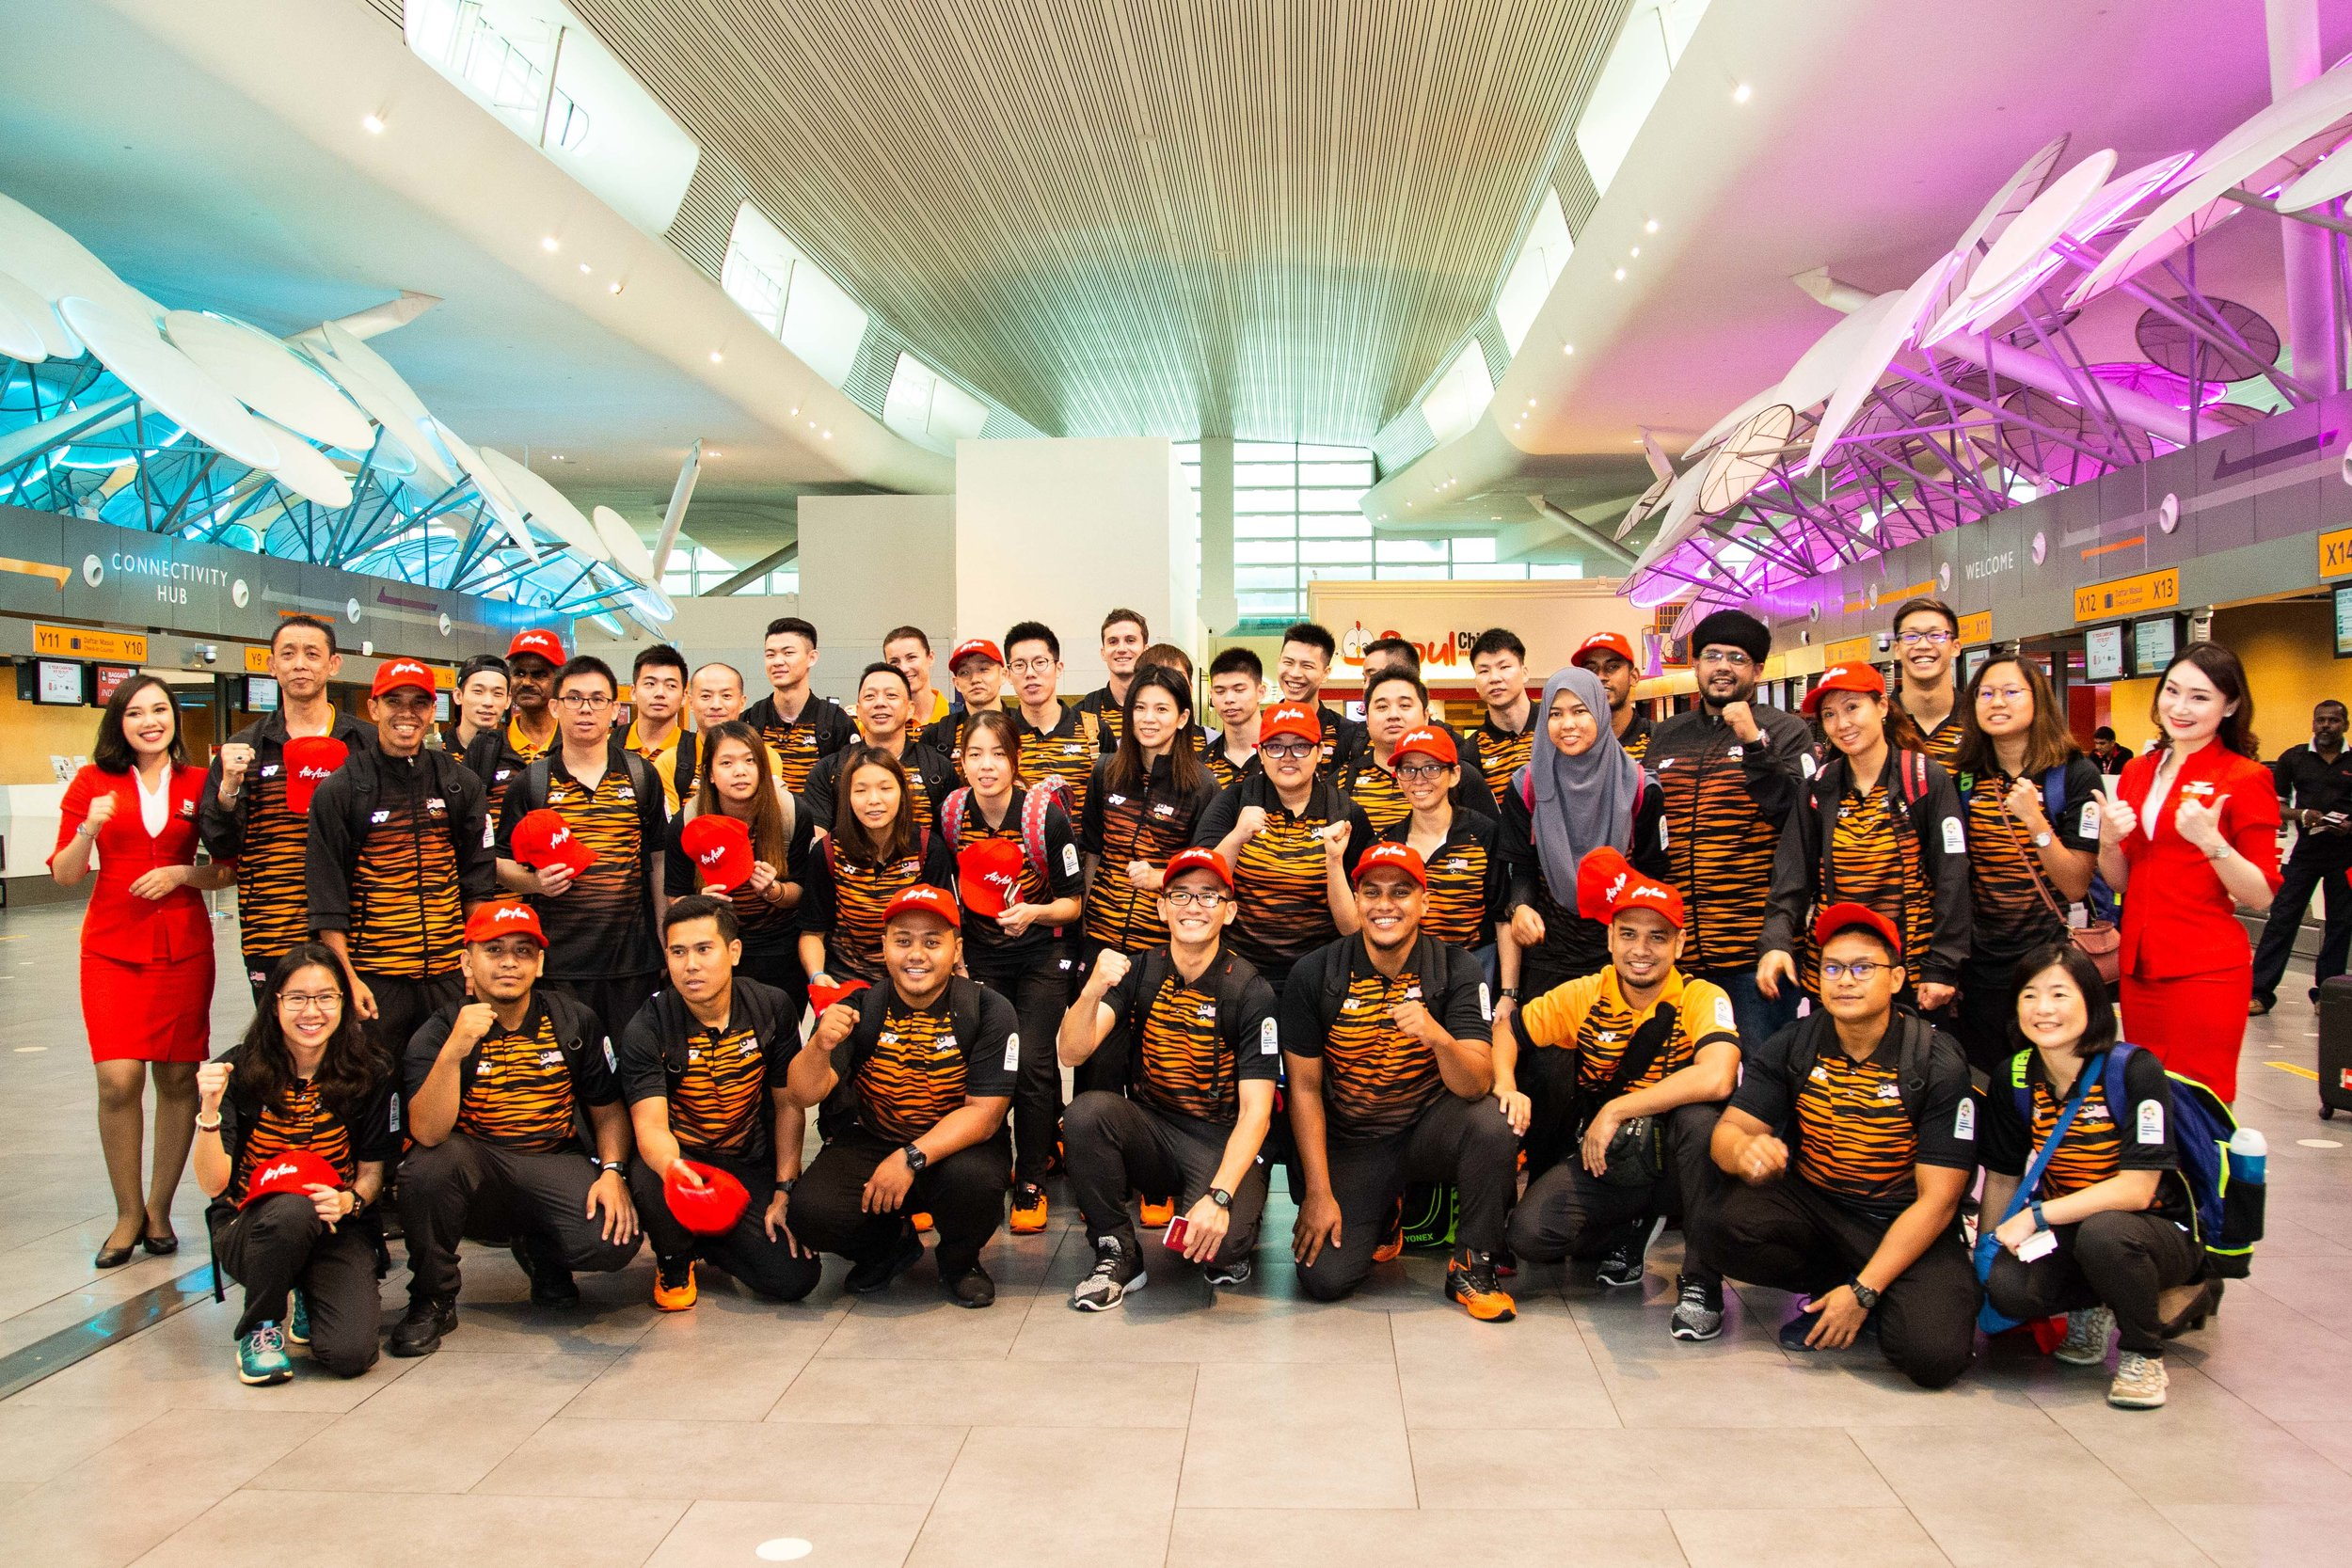 Malaysian shuttlers, swimmers and medical personnel heading off to Indonesia for the 2018 Asian Games.